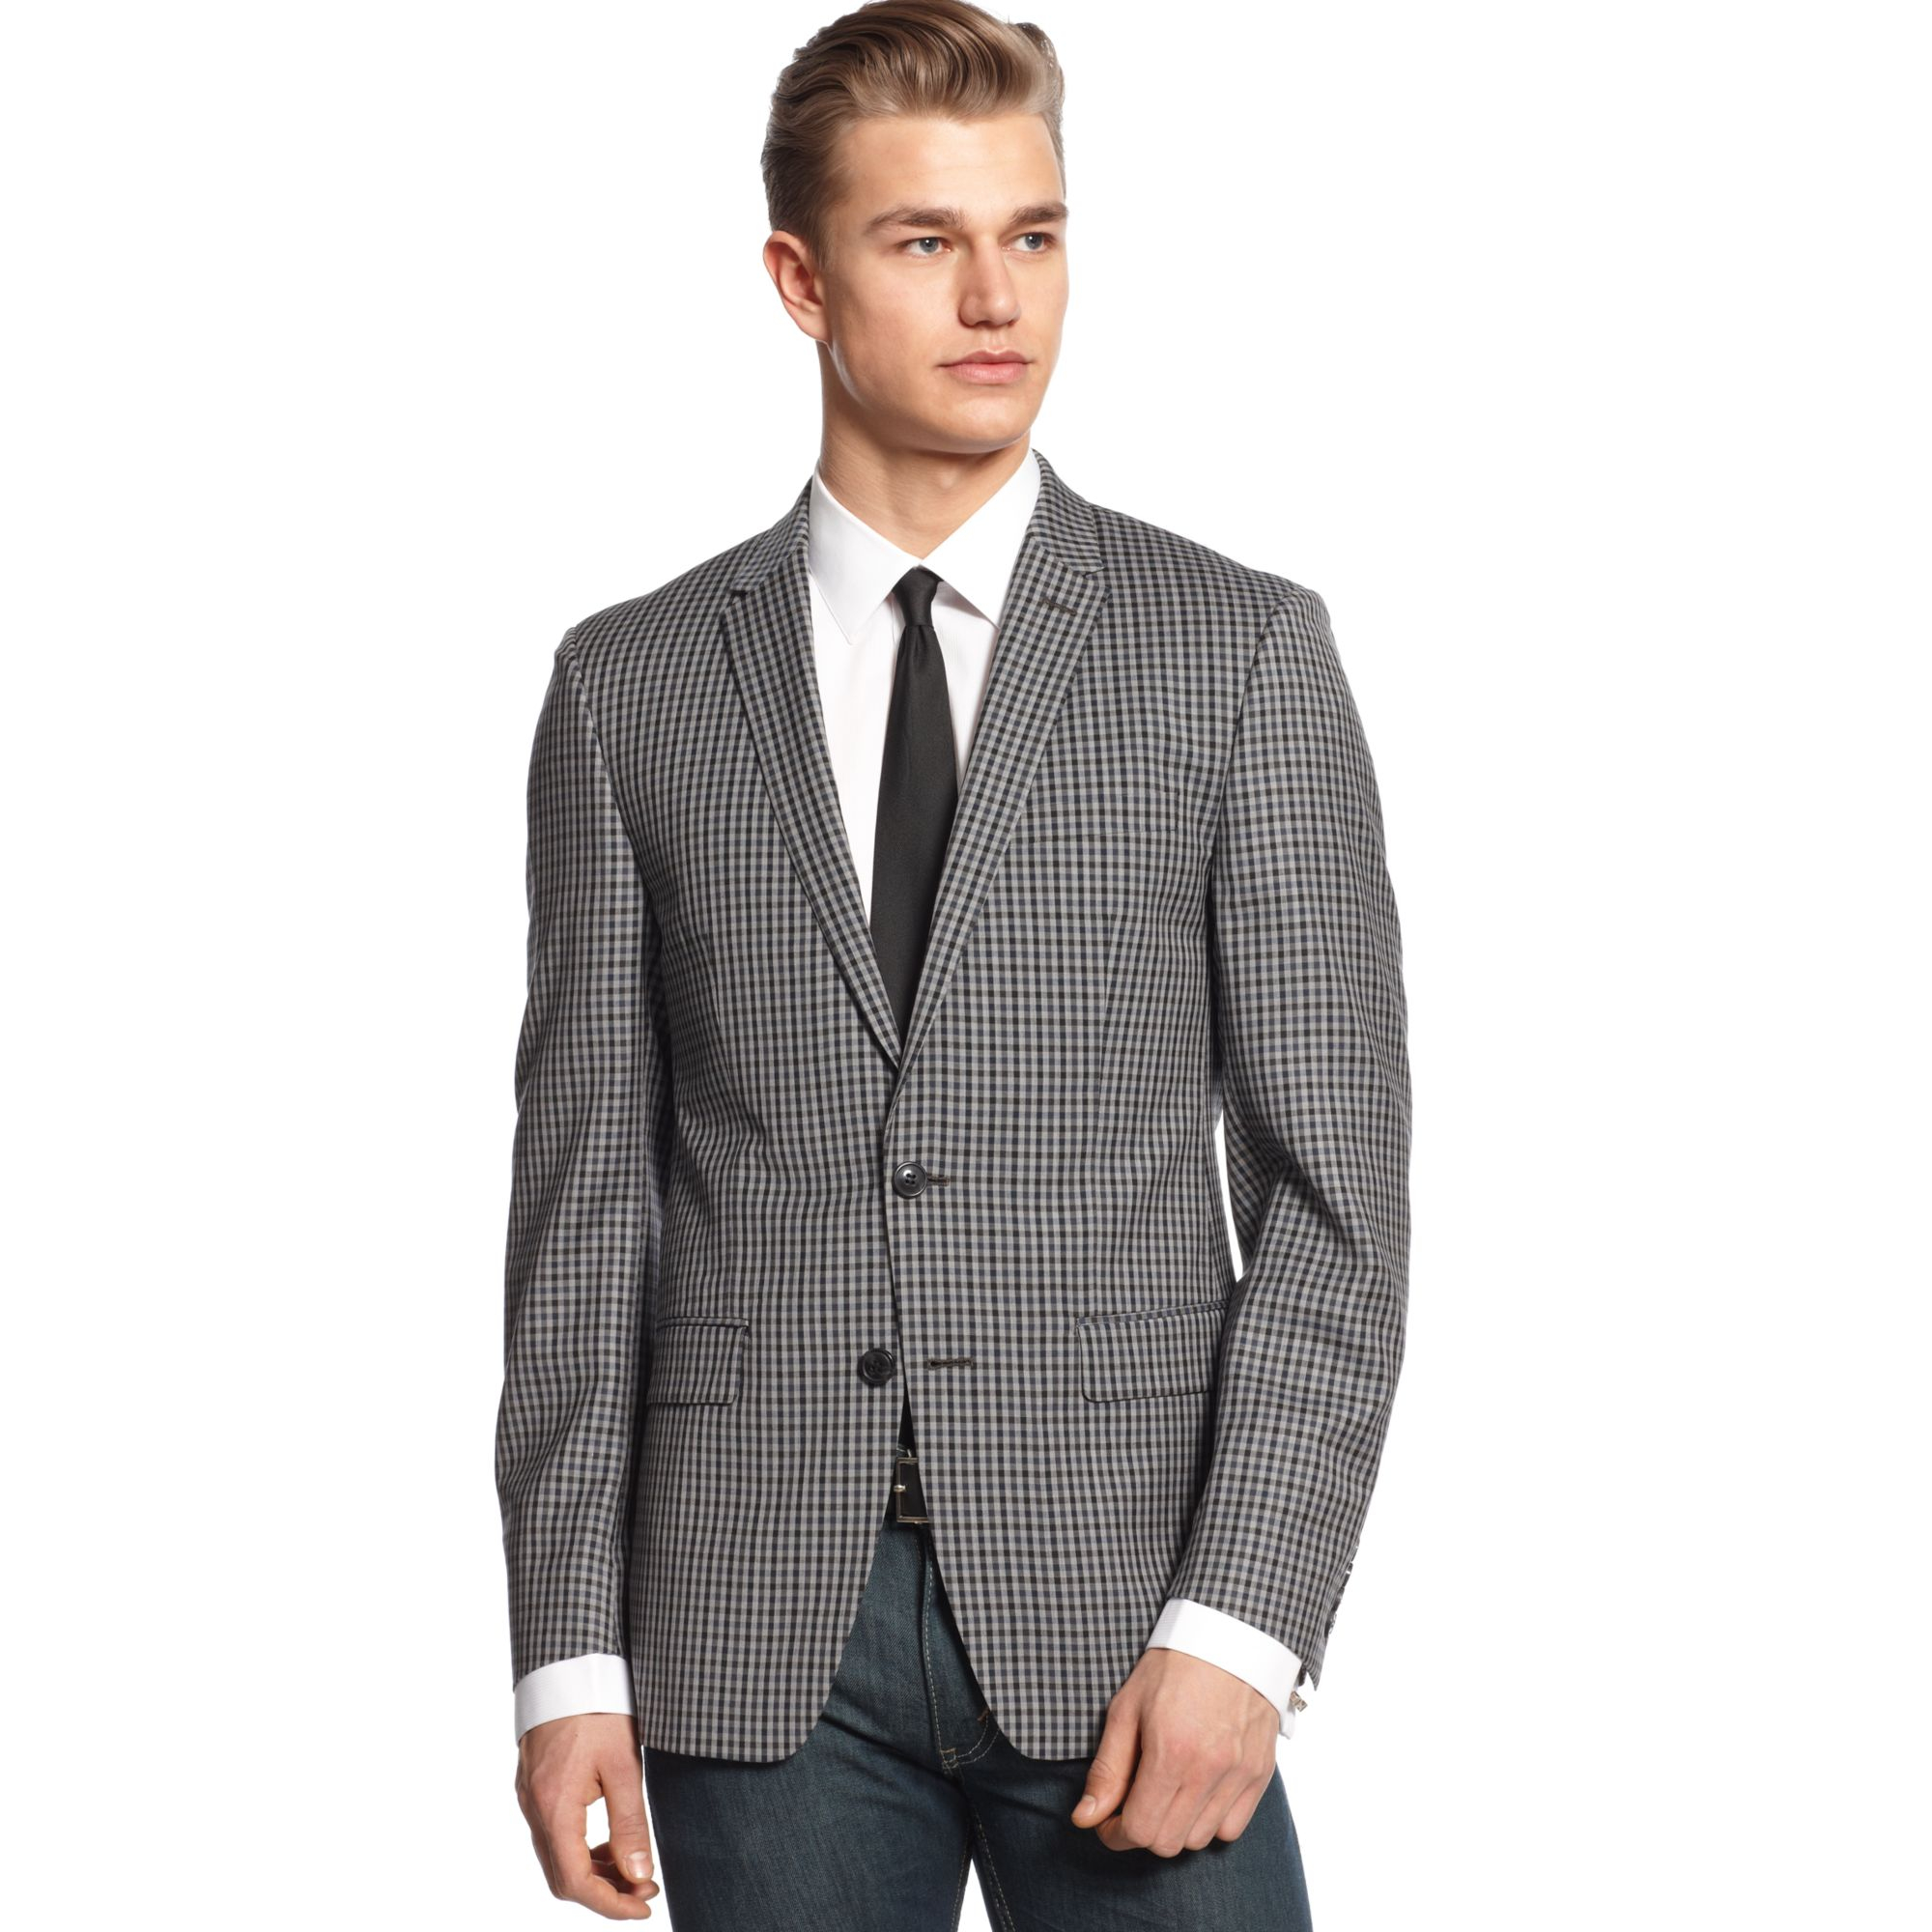 Lyst Dkny Sport Coat Light Grey With Black And Navy